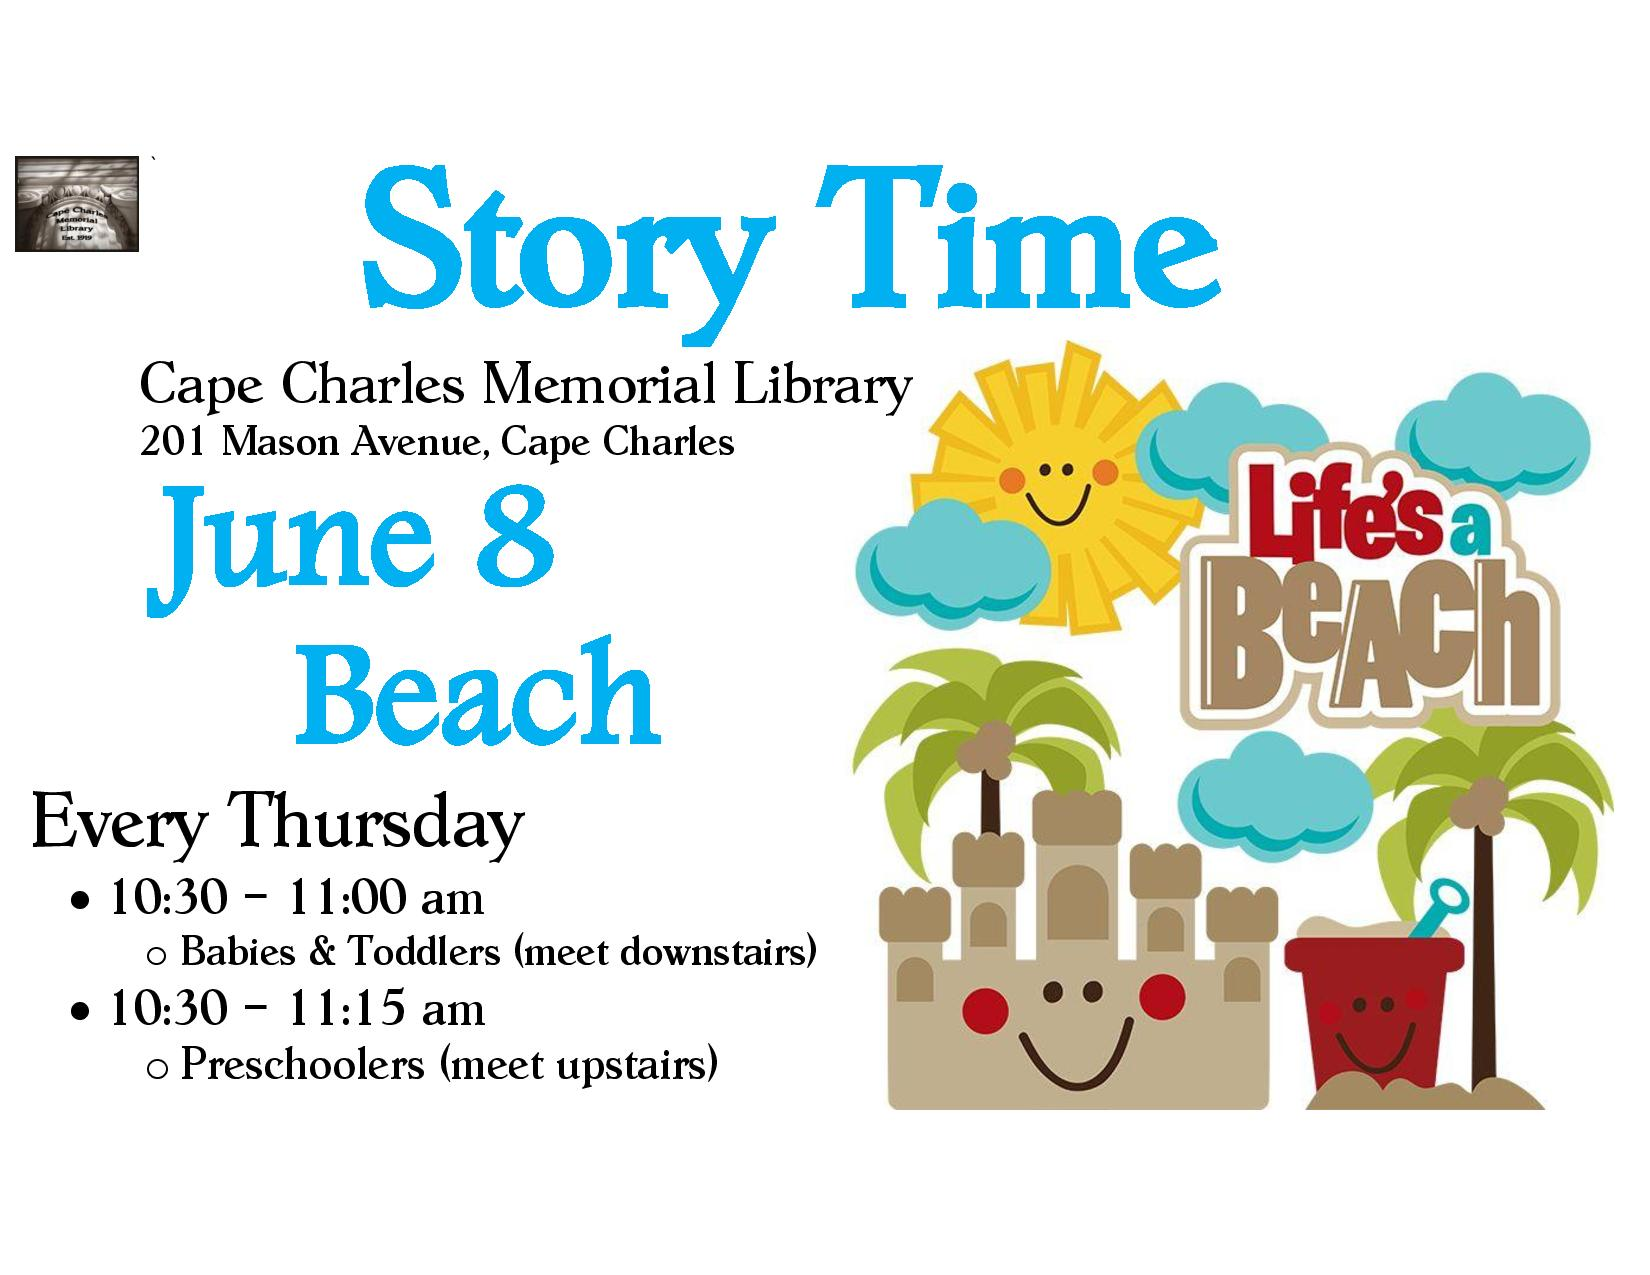 Story Time Preschool and Baby & Toddler